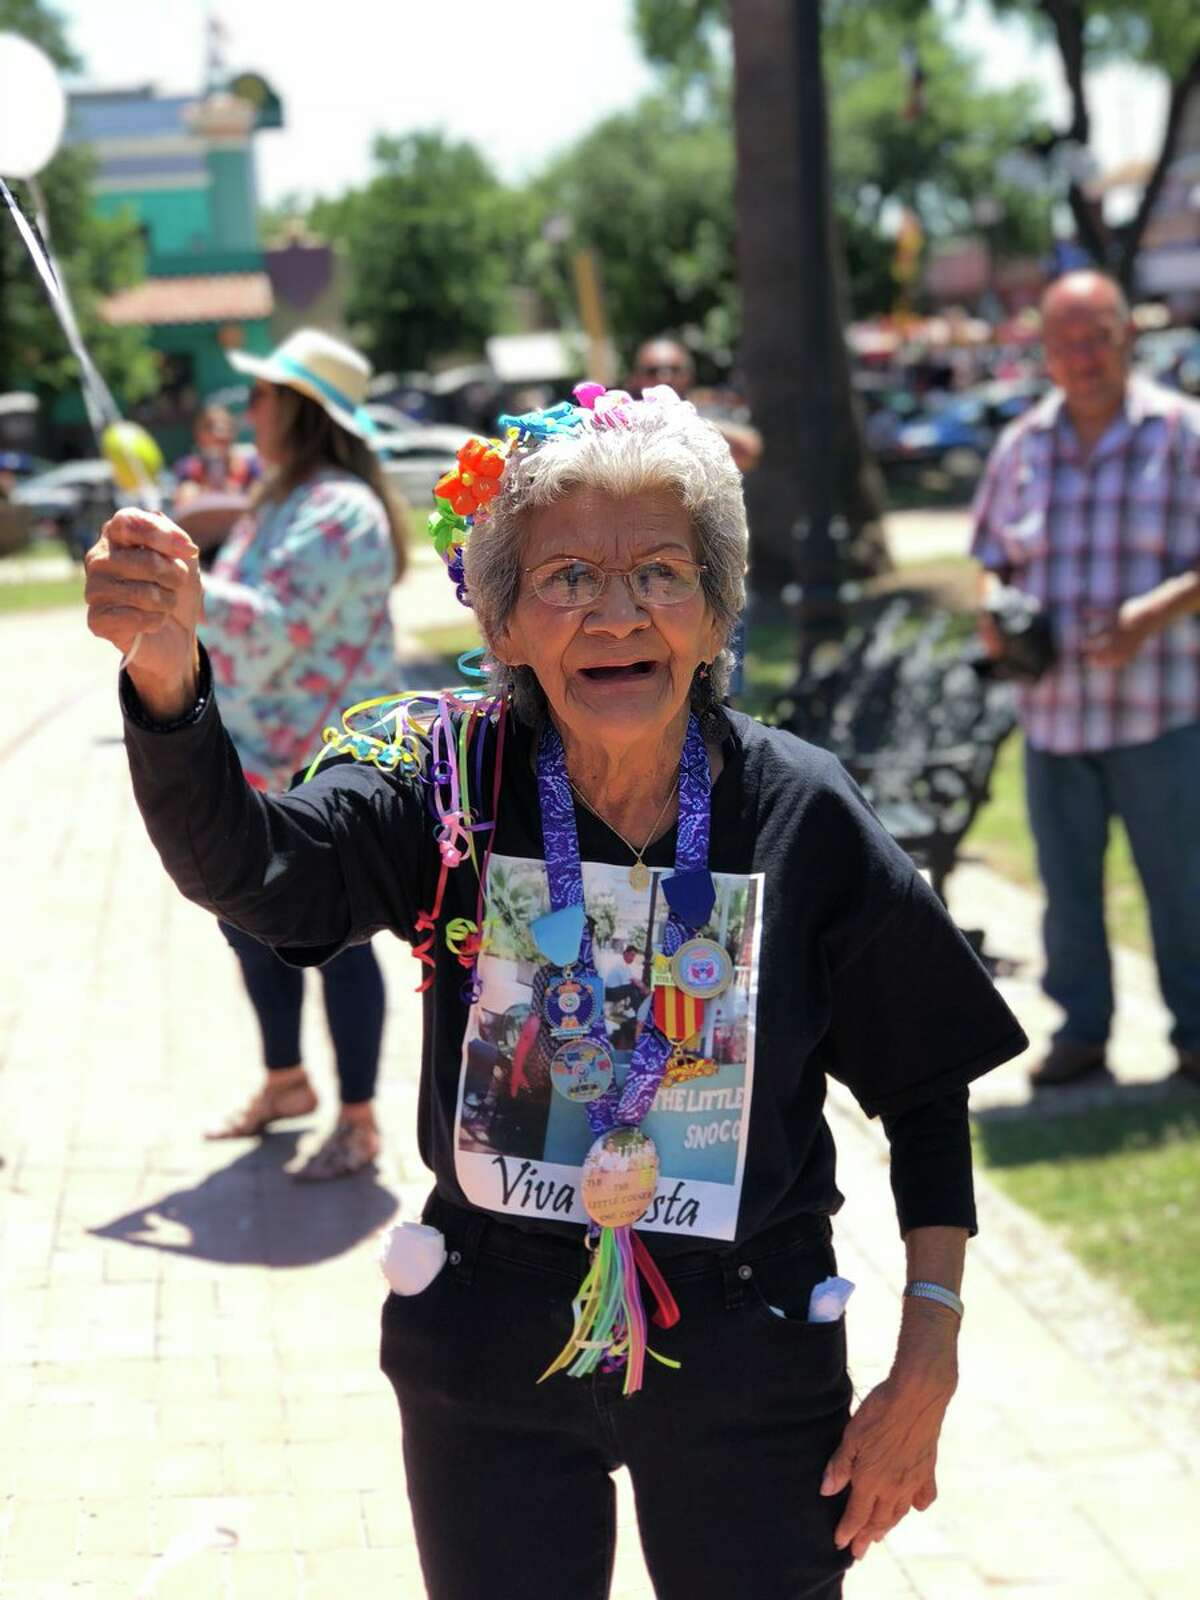 """@reggierivera10: """"So Every fiesta we go to market square to let balloons go for my grandpa who passed away and had a snow cone stand there for many years, and my grandma looked pretty excited to send him a balloon."""""""